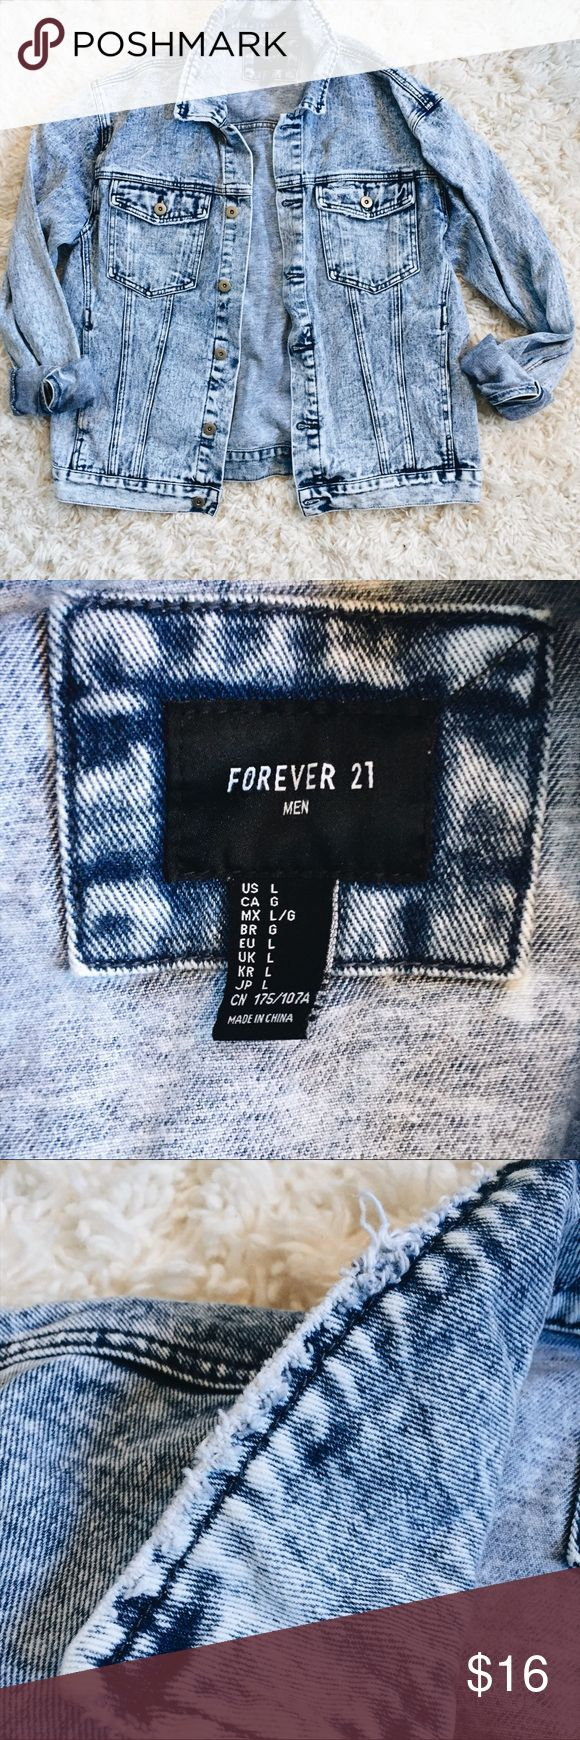 Forever 21 Men's Jean Jacket Forever 21 Men's Jean Jacket🌼 I loved this jean jacket but I have way too many, so time to pass it on! Gently worn! Forever 21 Jackets & Coats Jean Jackets